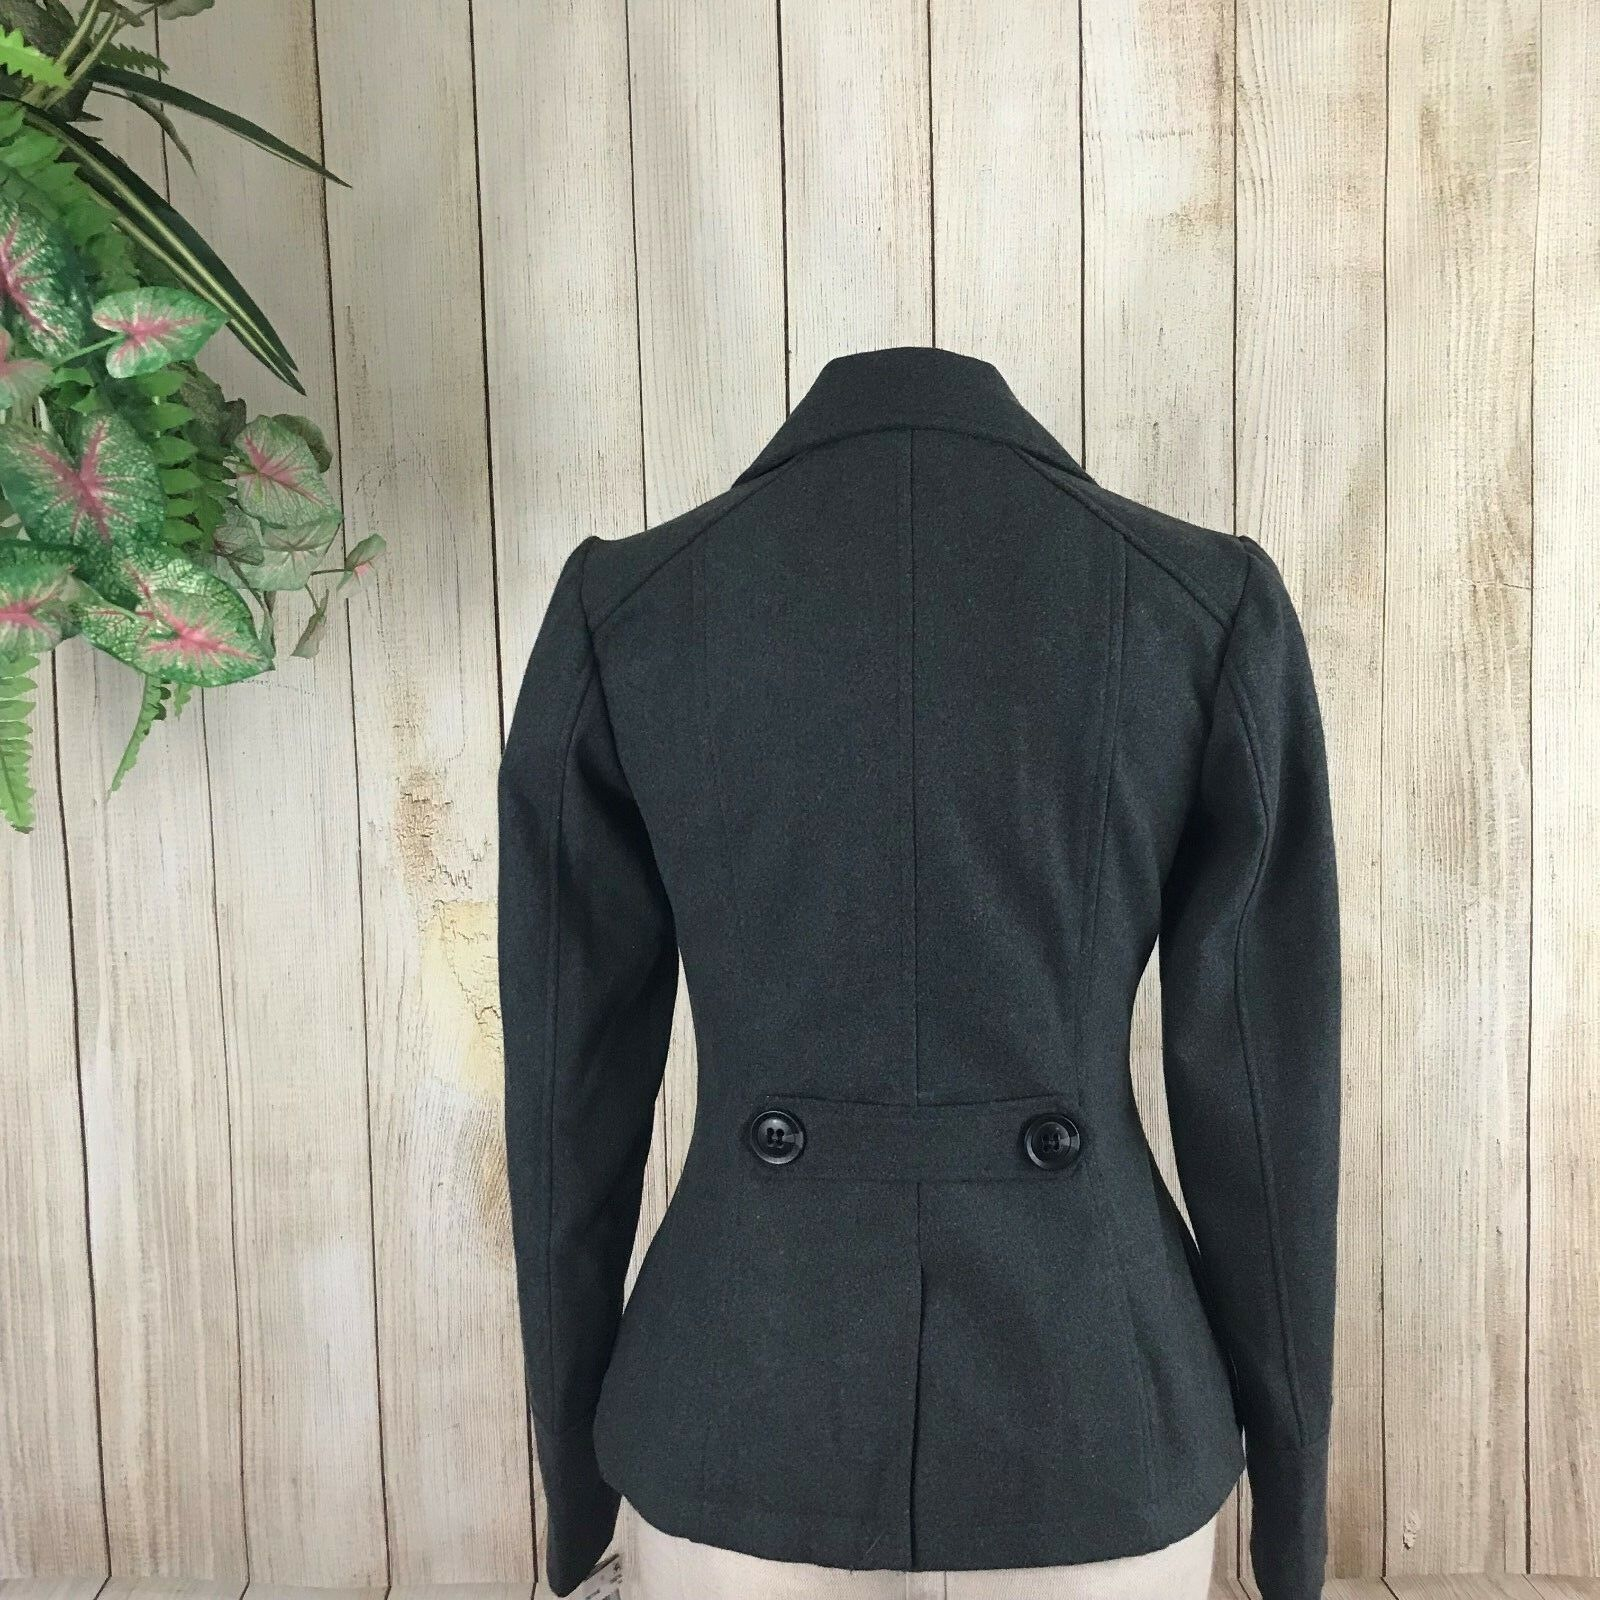 Celebrity Pink  89.5 Women's Double Double Double Breasted Lined Peacoat Charcoal Size XS 7f5730